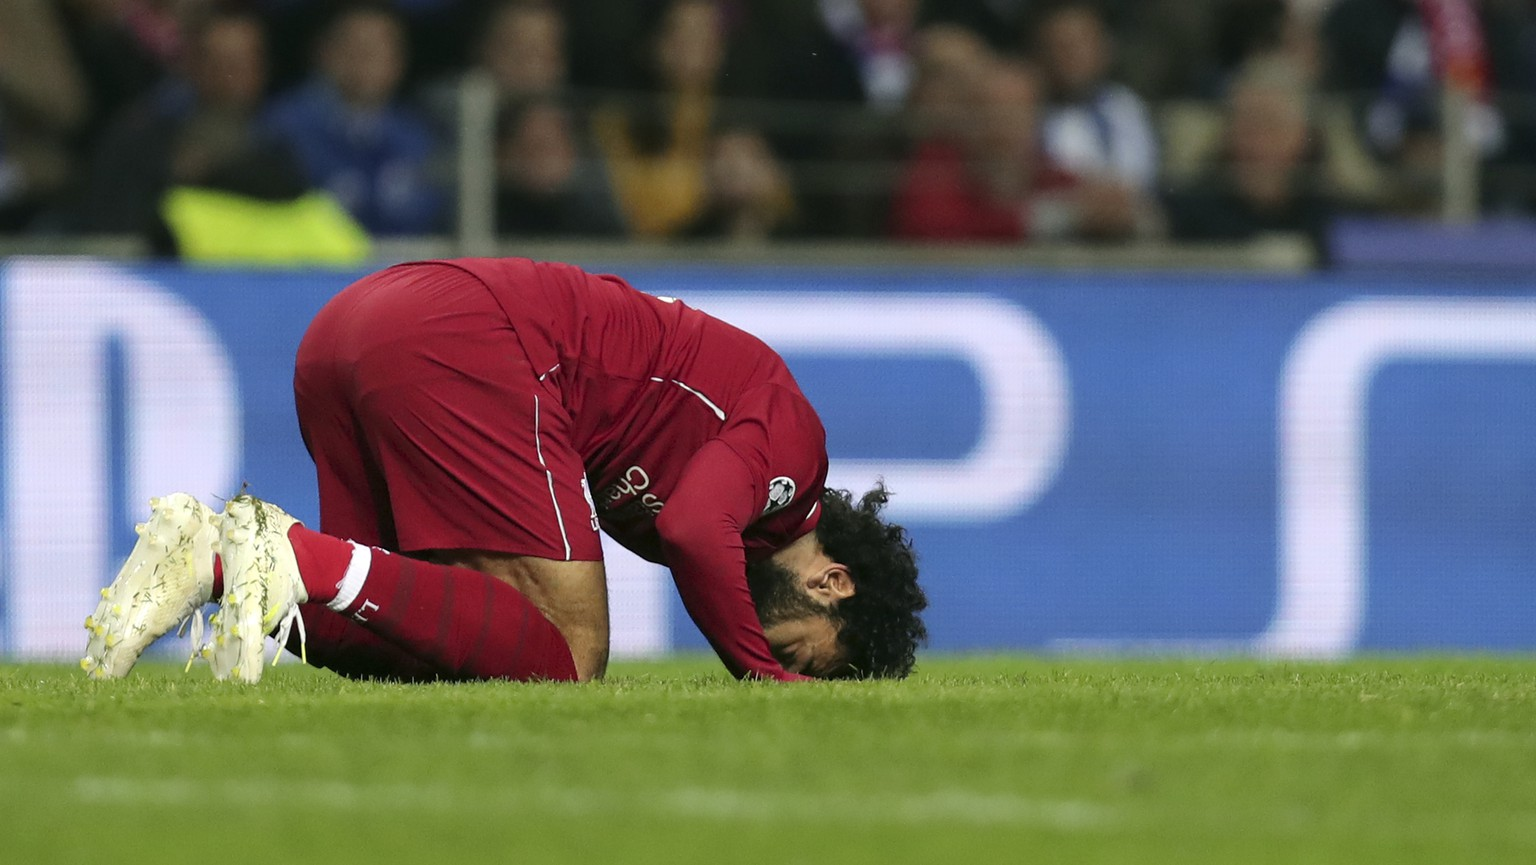 Liverpool's Mohamed Salah celebrates after scoring his side's second goal during the Champions League quarterfinals, 2nd leg, soccer match between FC Porto and Liverpool at the Dragao stadium in Porto, Portugal, Wednesday, April 17, 2019. (AP Photo/Luis Vieira)